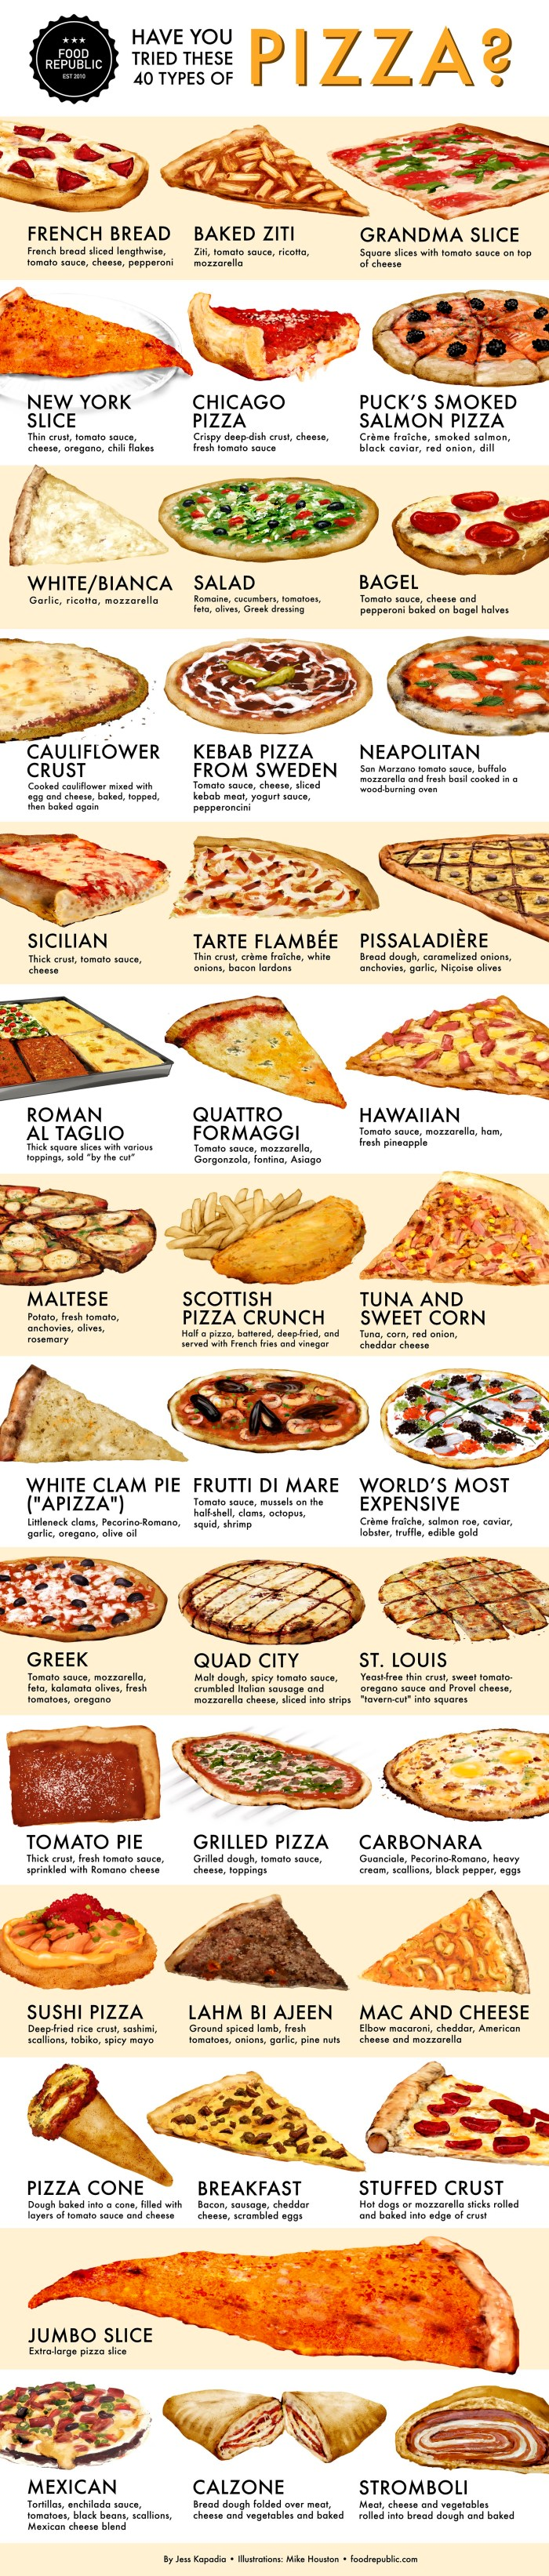 Have You Tried These 40 Types Of Pizza Food Republic